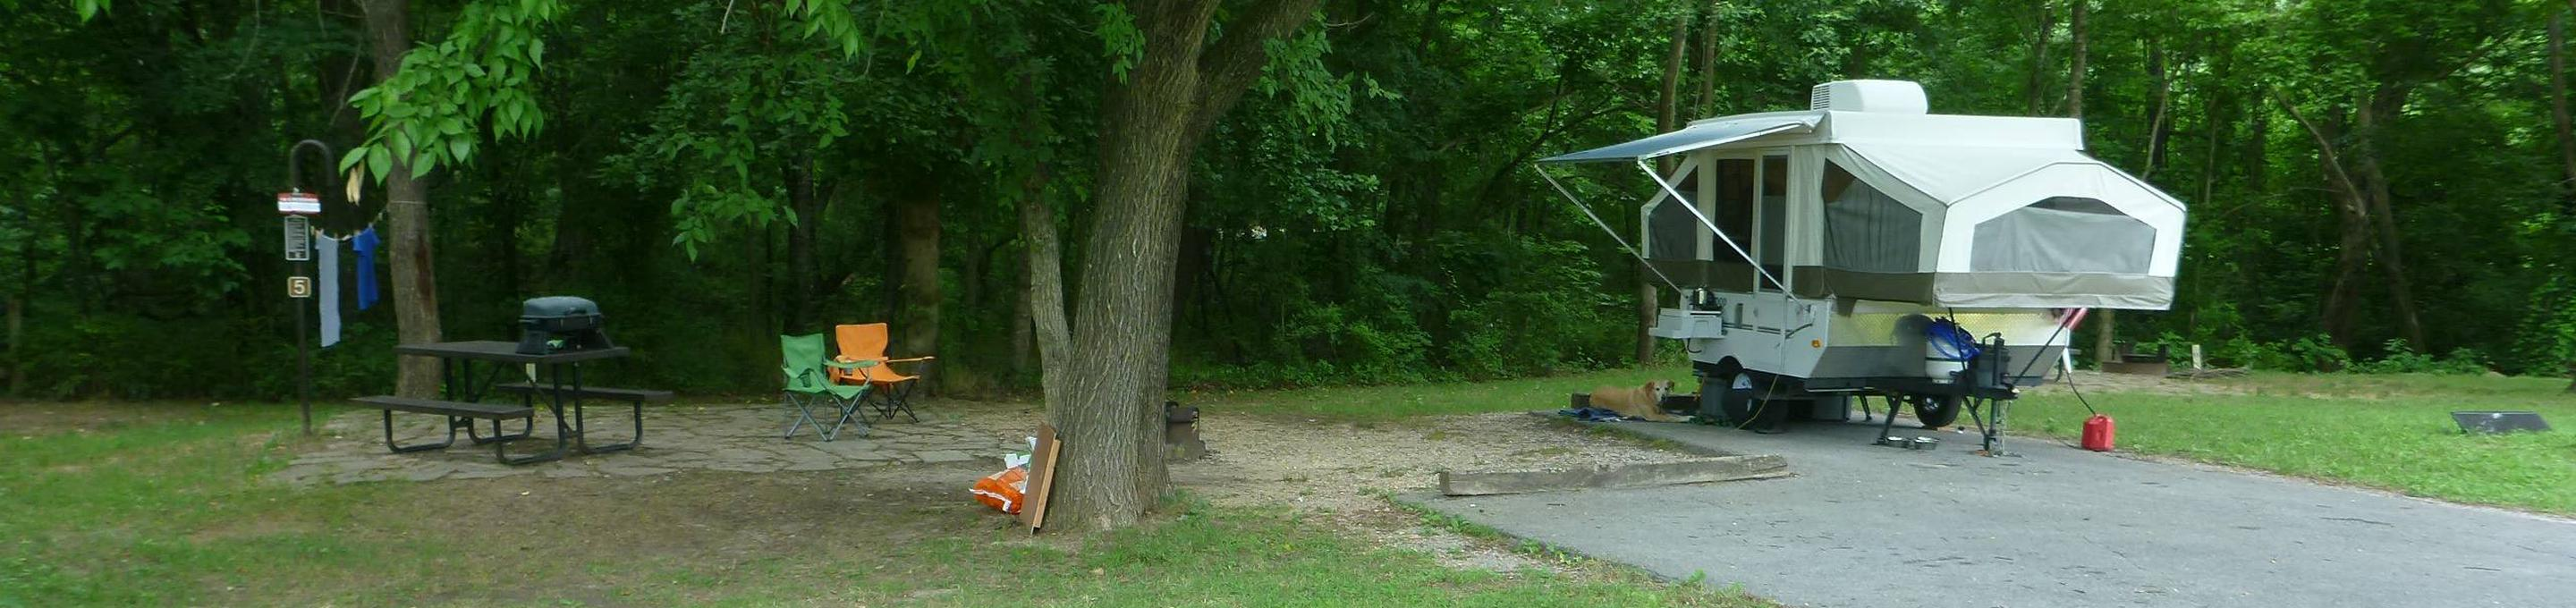 Tyler Bend Main Loop Ste #5-154' back-in, no tent pad. Parking area is wide enough for RV and car to park side by side.